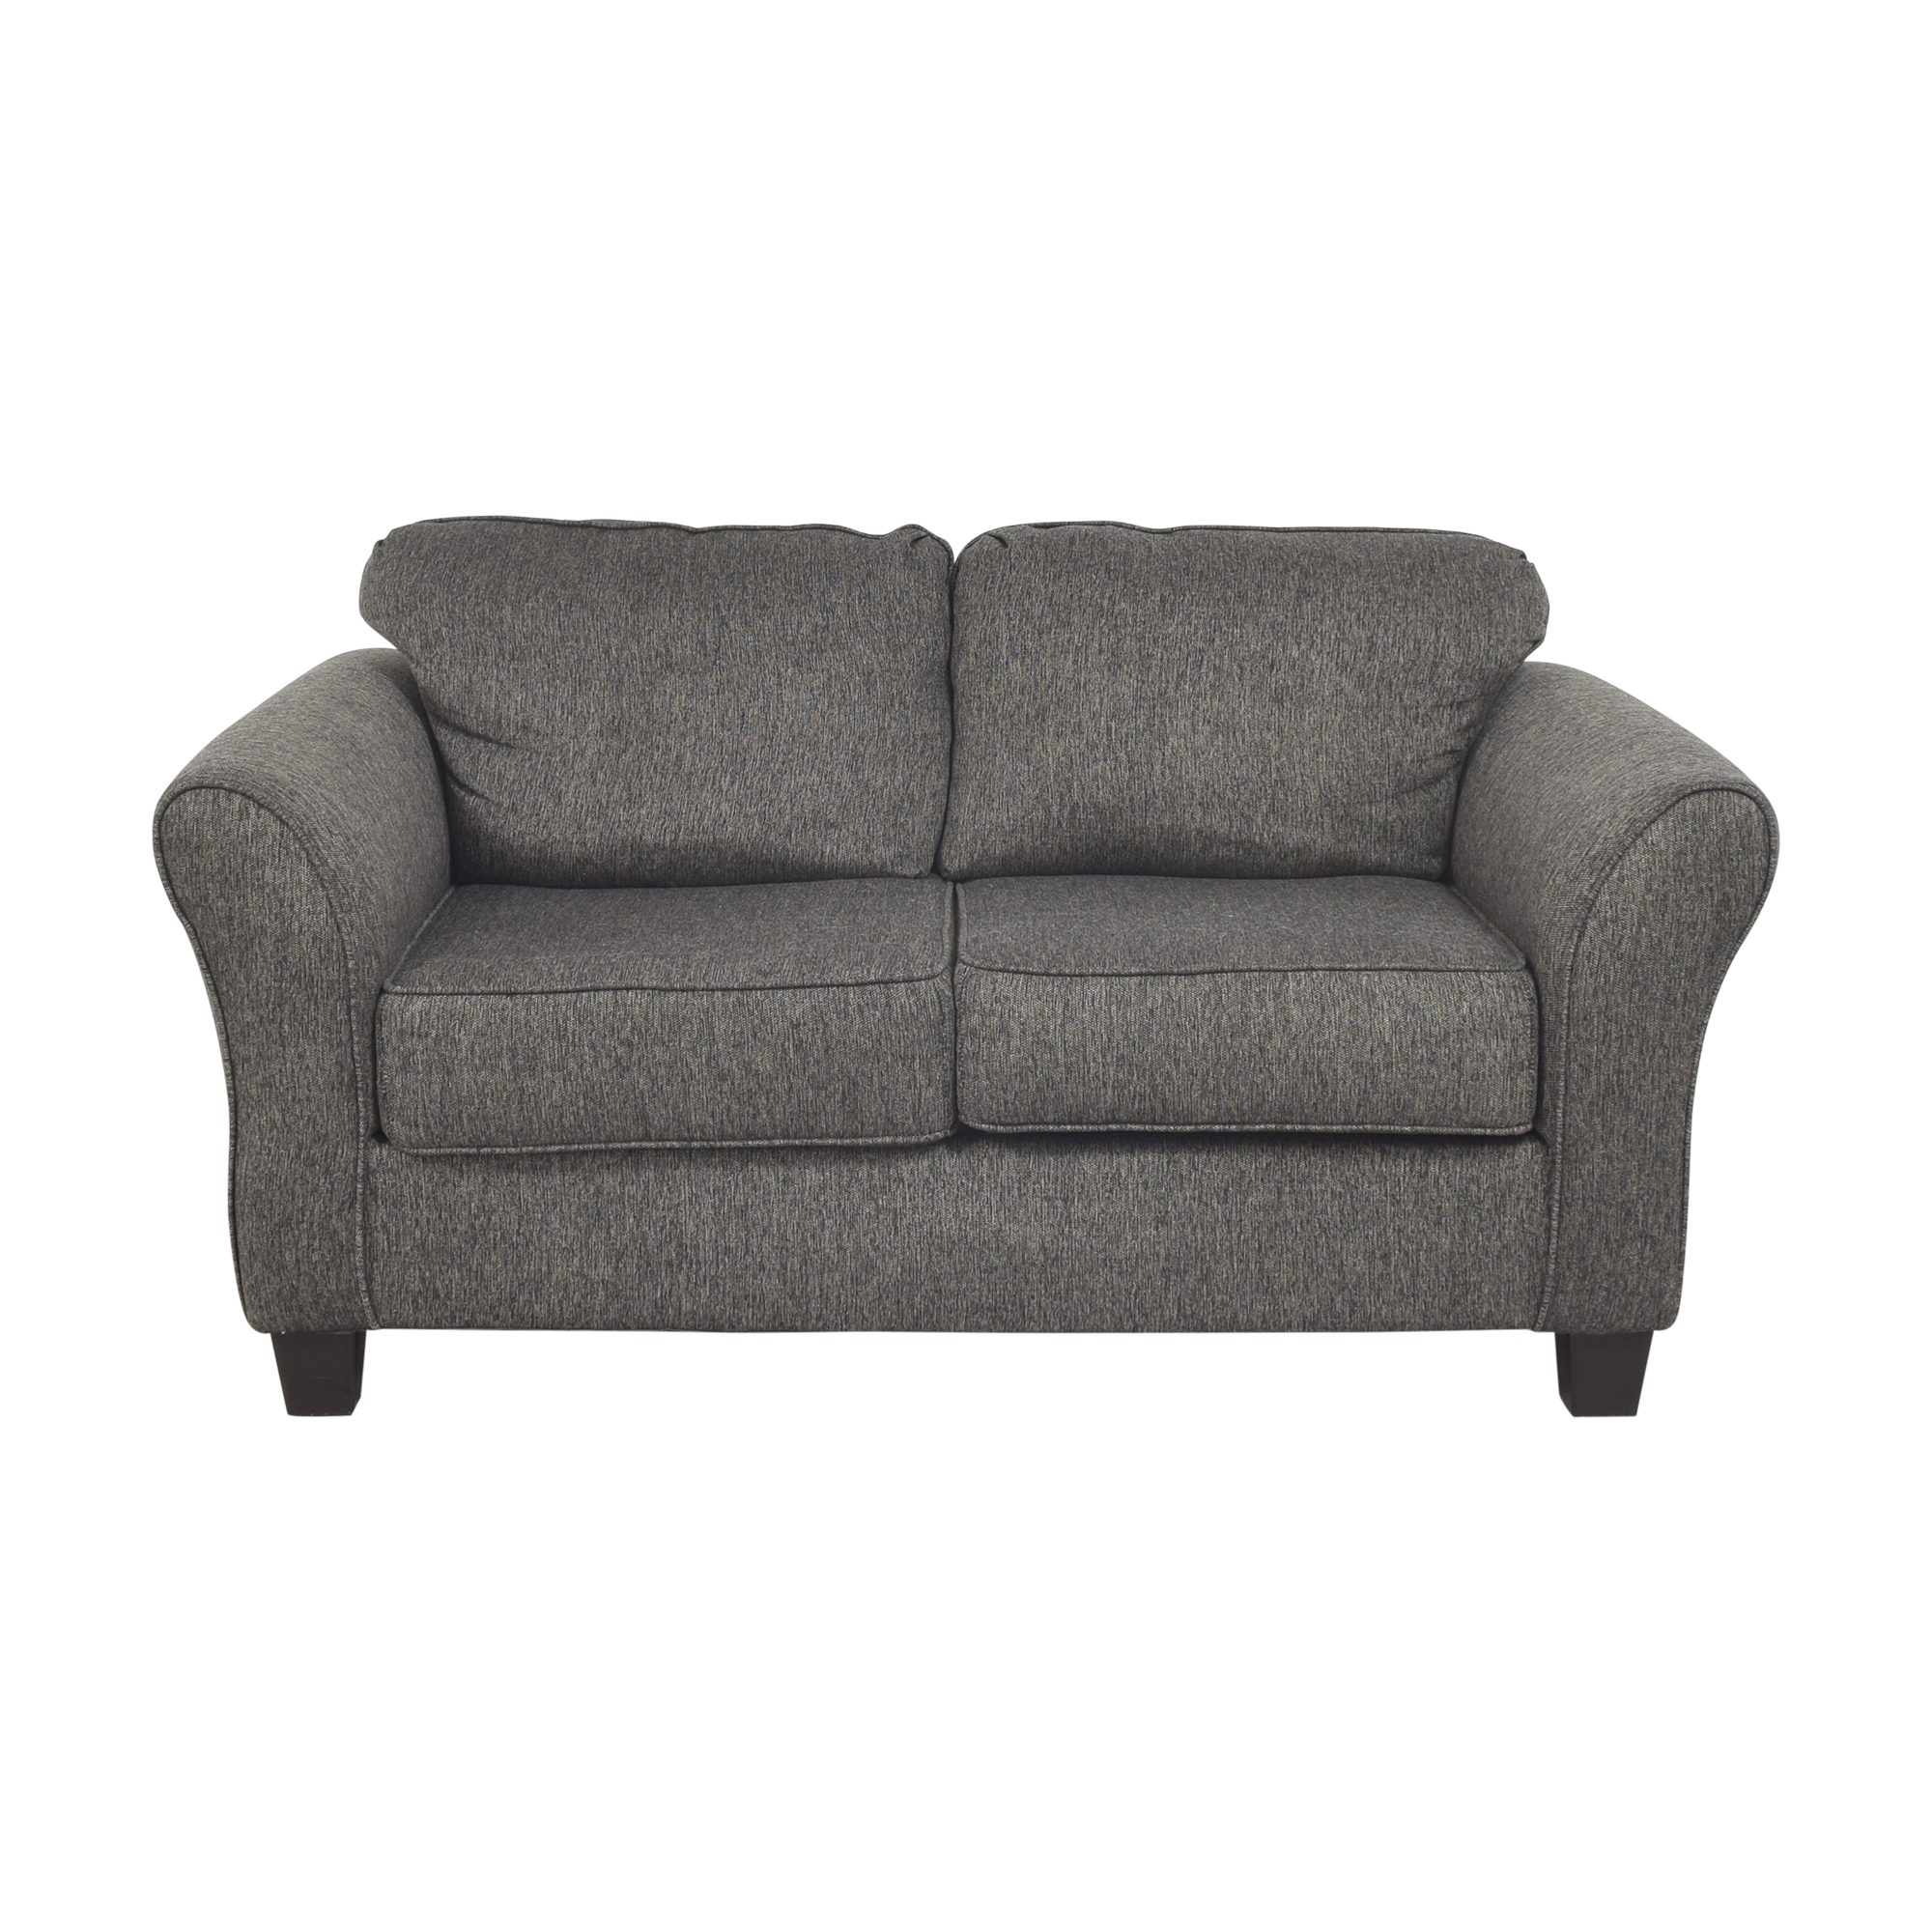 shop Raymour & Flanigan Hartley Loveseat Raymour & Flanigan